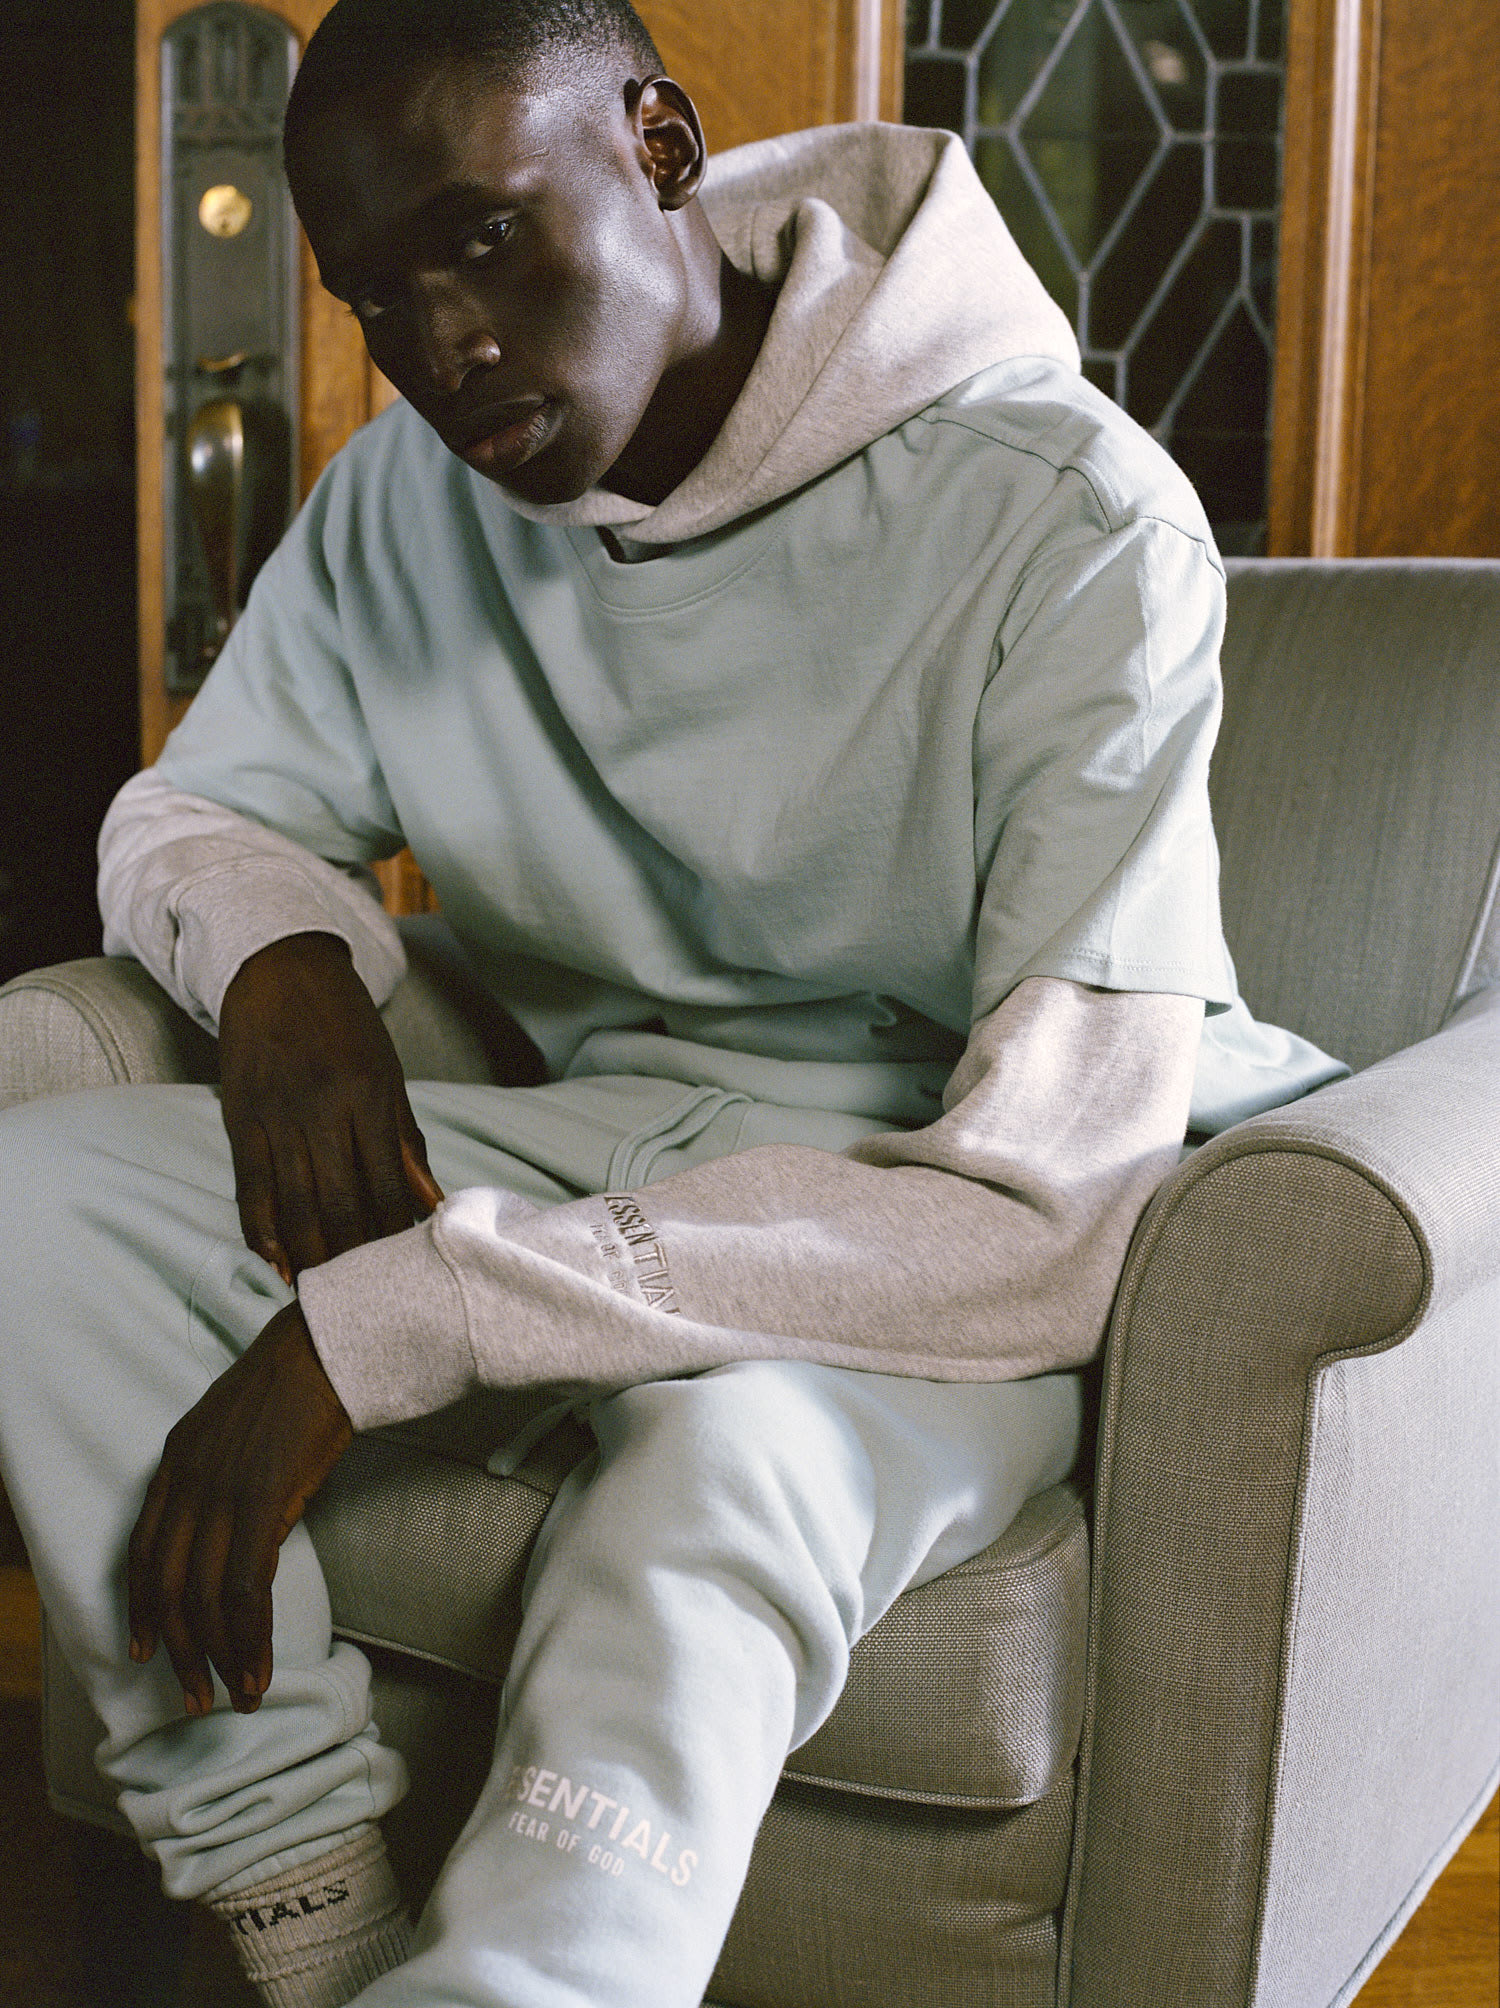 FEAR OF GOD ESSENTIALS HOLIDAY 2019 COLLECTION